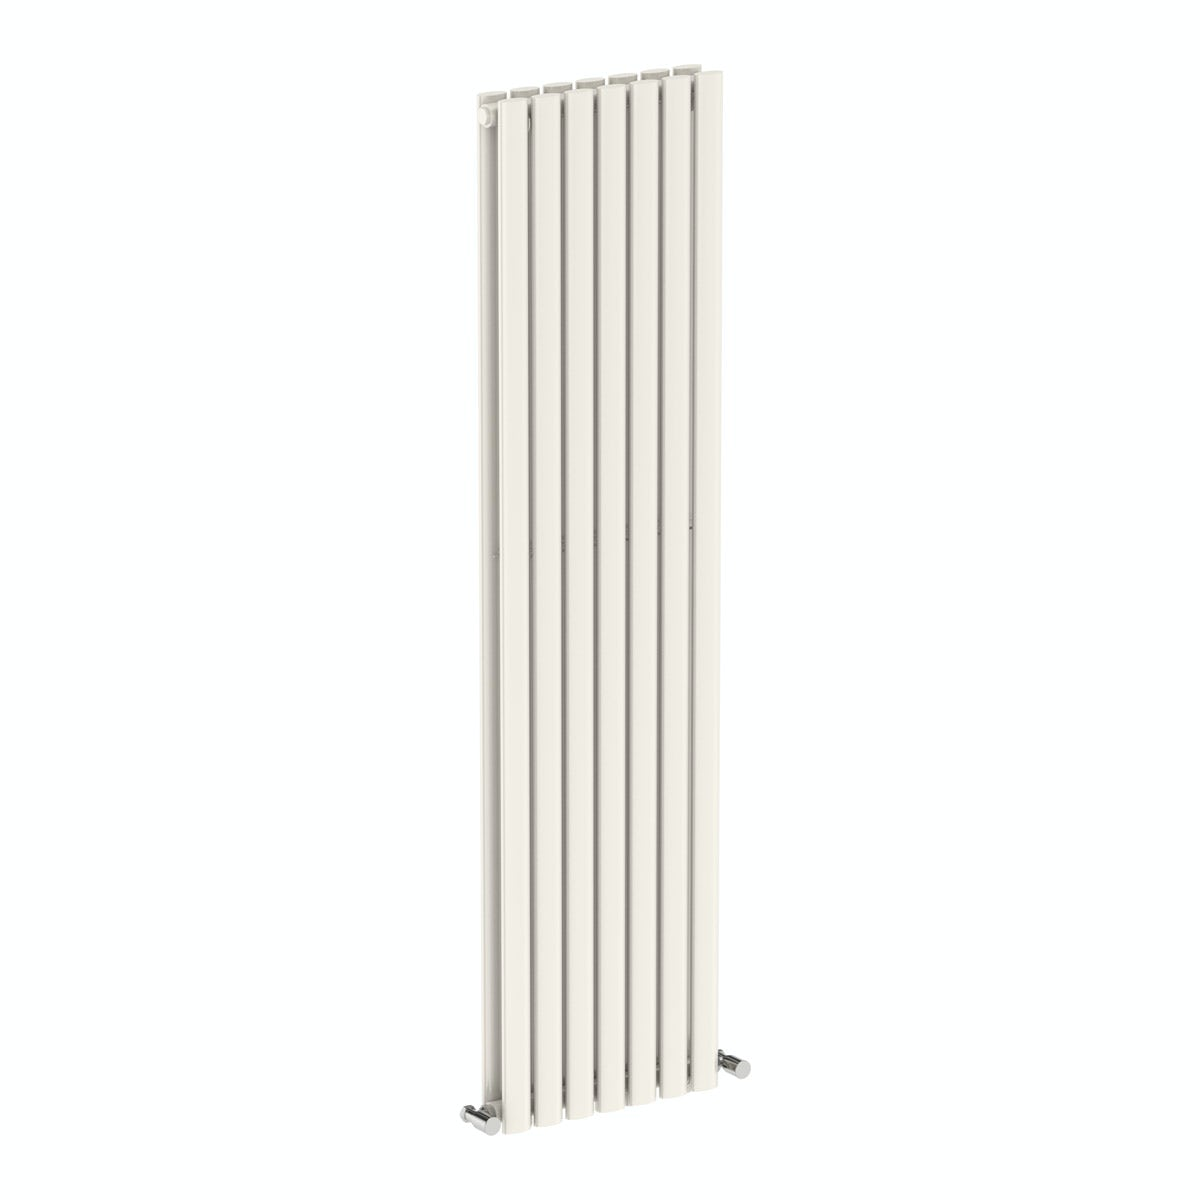 Mode Tate white double vertical radiator 1600 x 406 offer pack